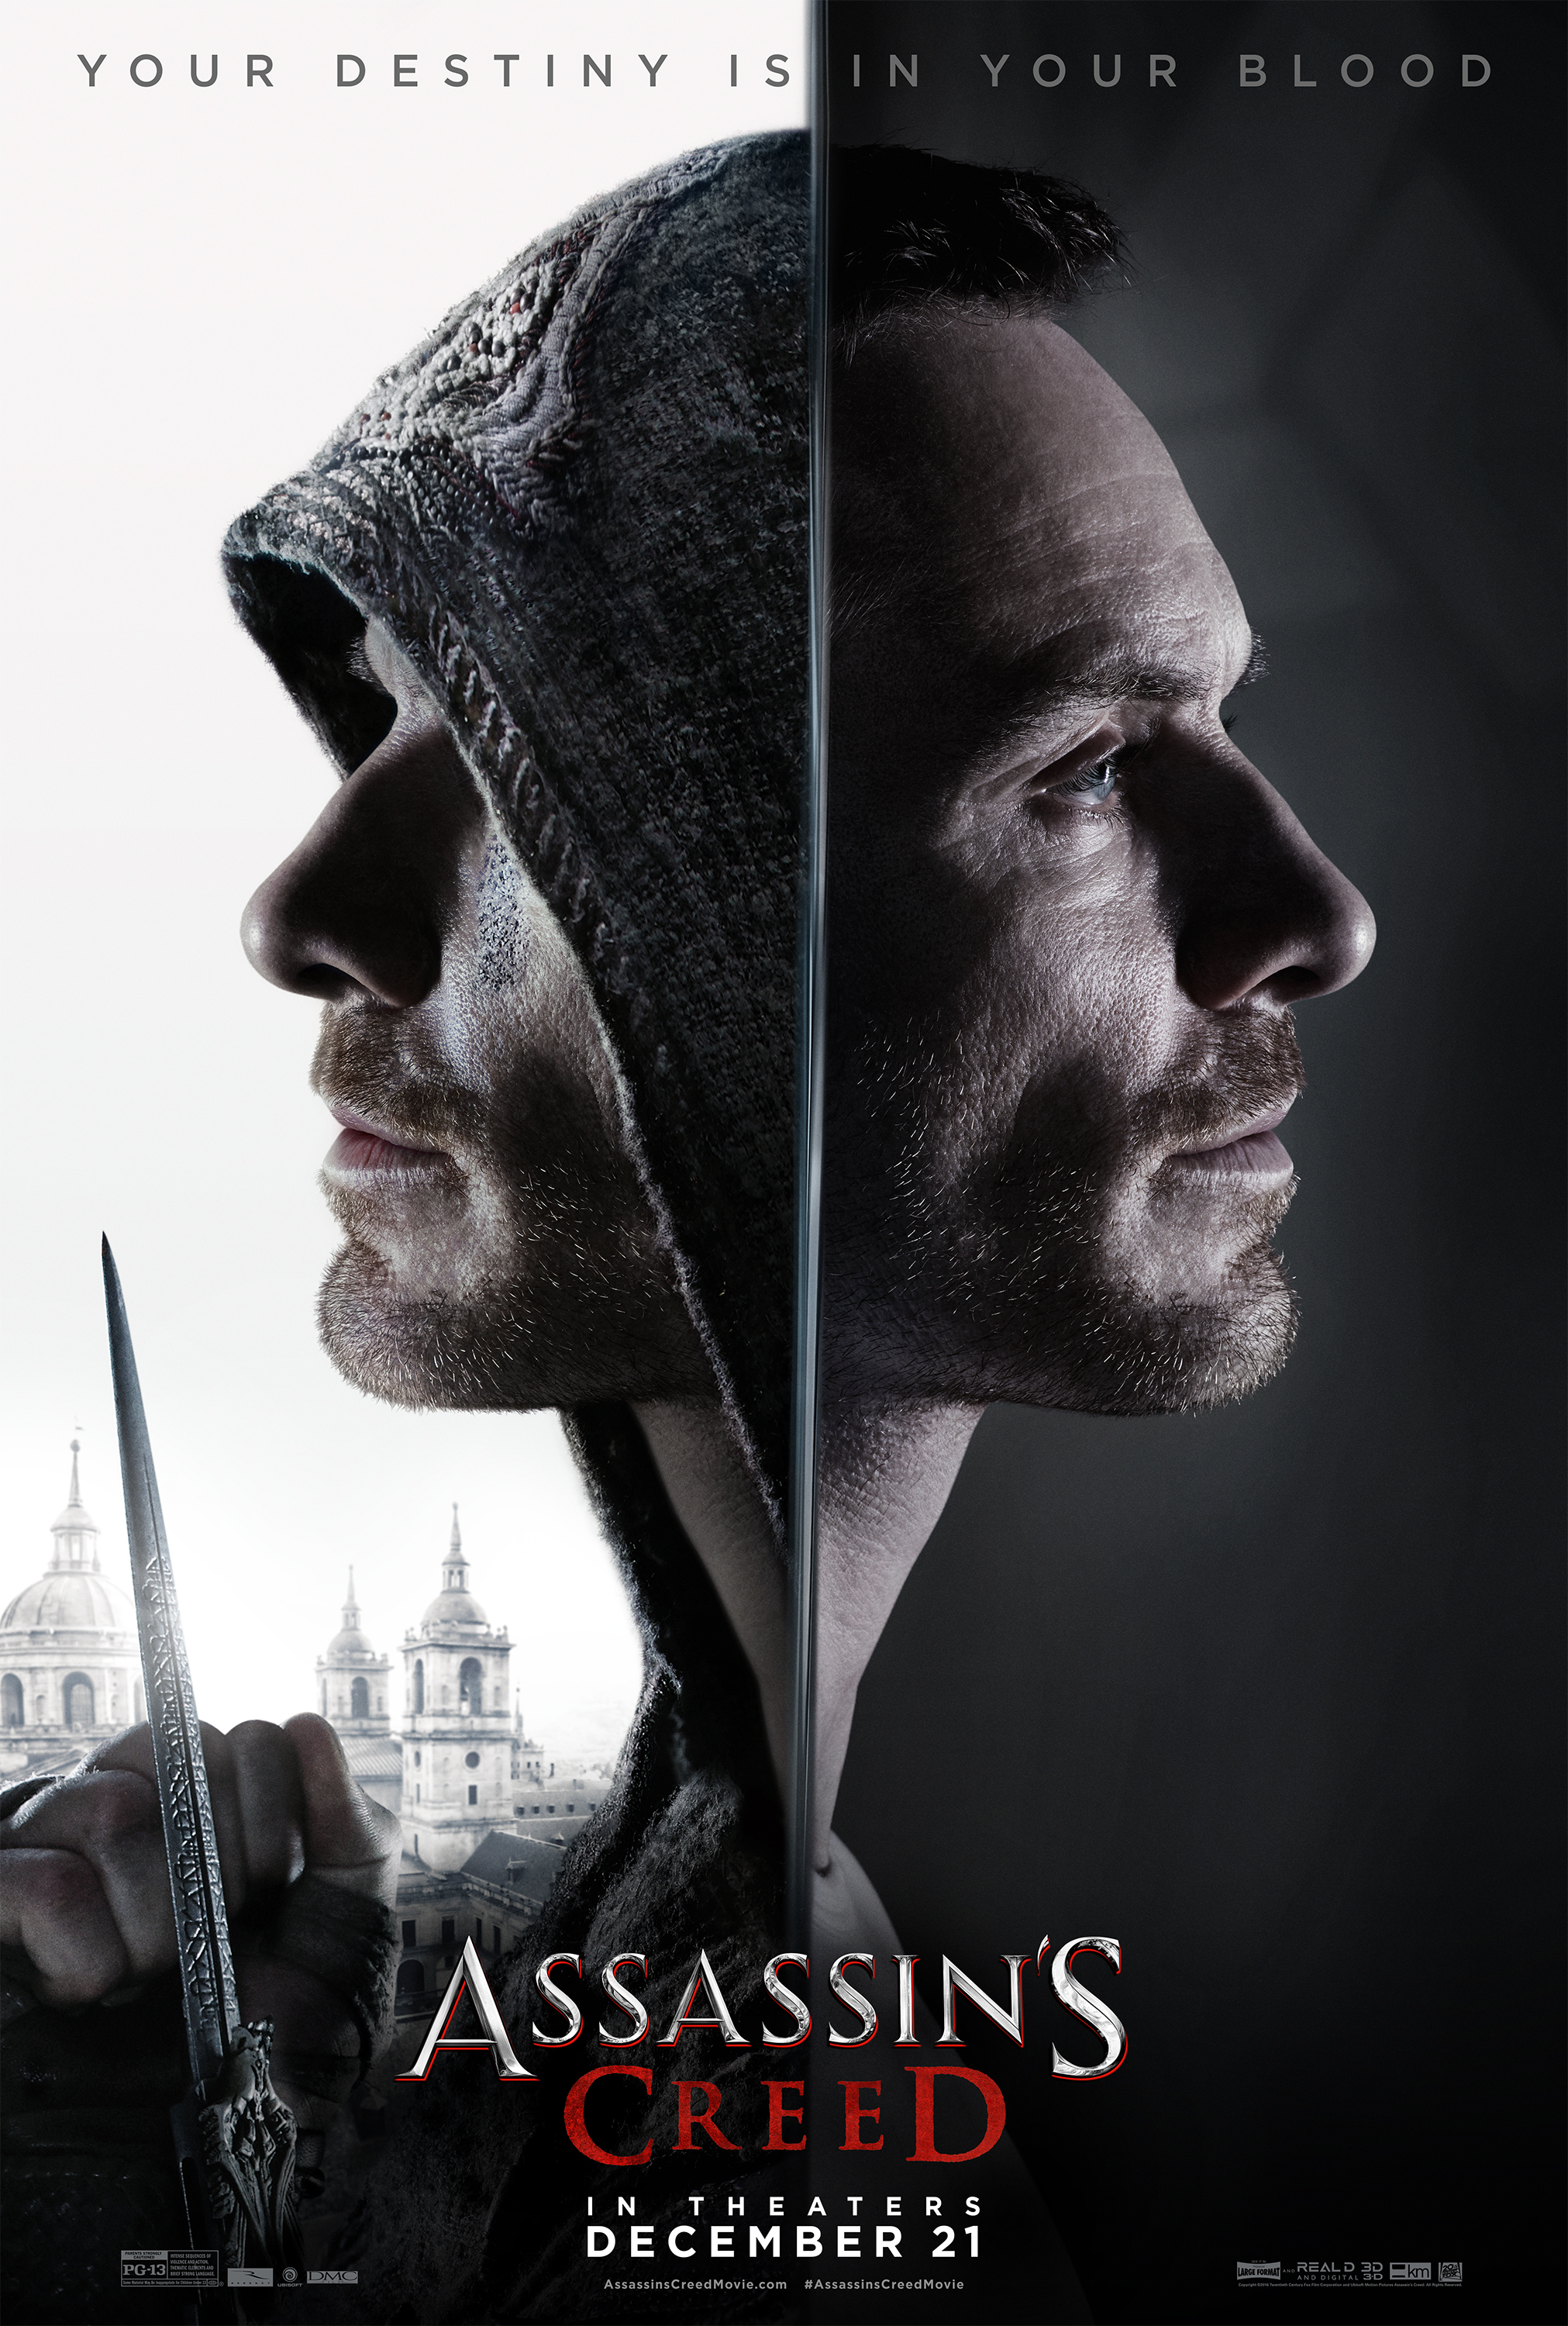 Assassin's Creed | Official Trailer